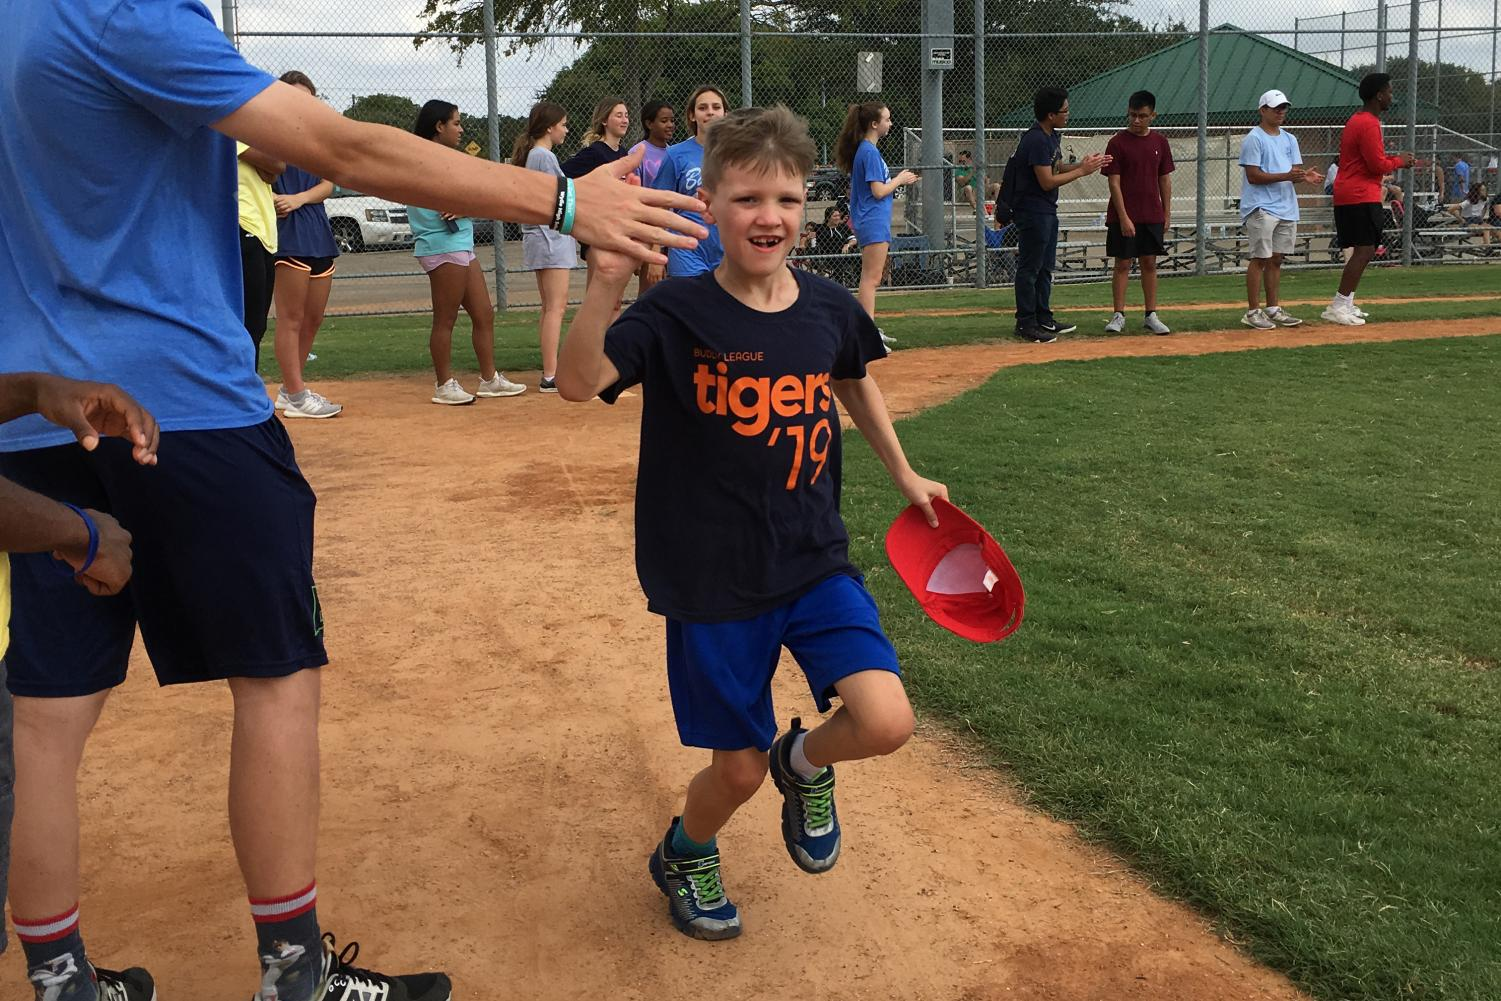 People who may not be able to participate in conventional baseball teams because of disabilities may compete in the Buddy League.